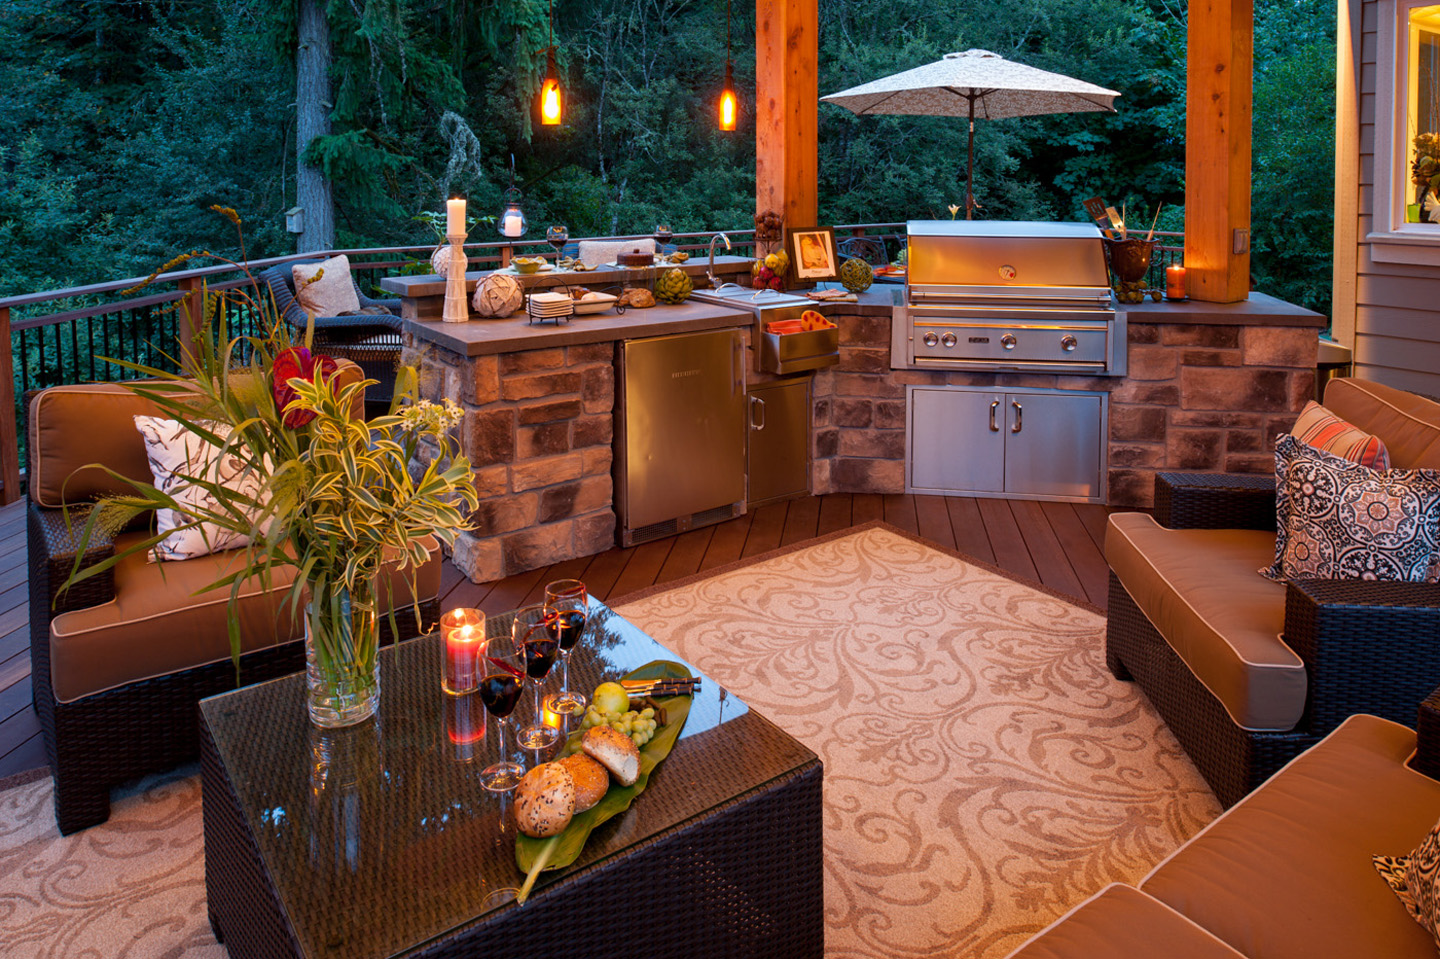 Pendant Lights in outdoor kitchen